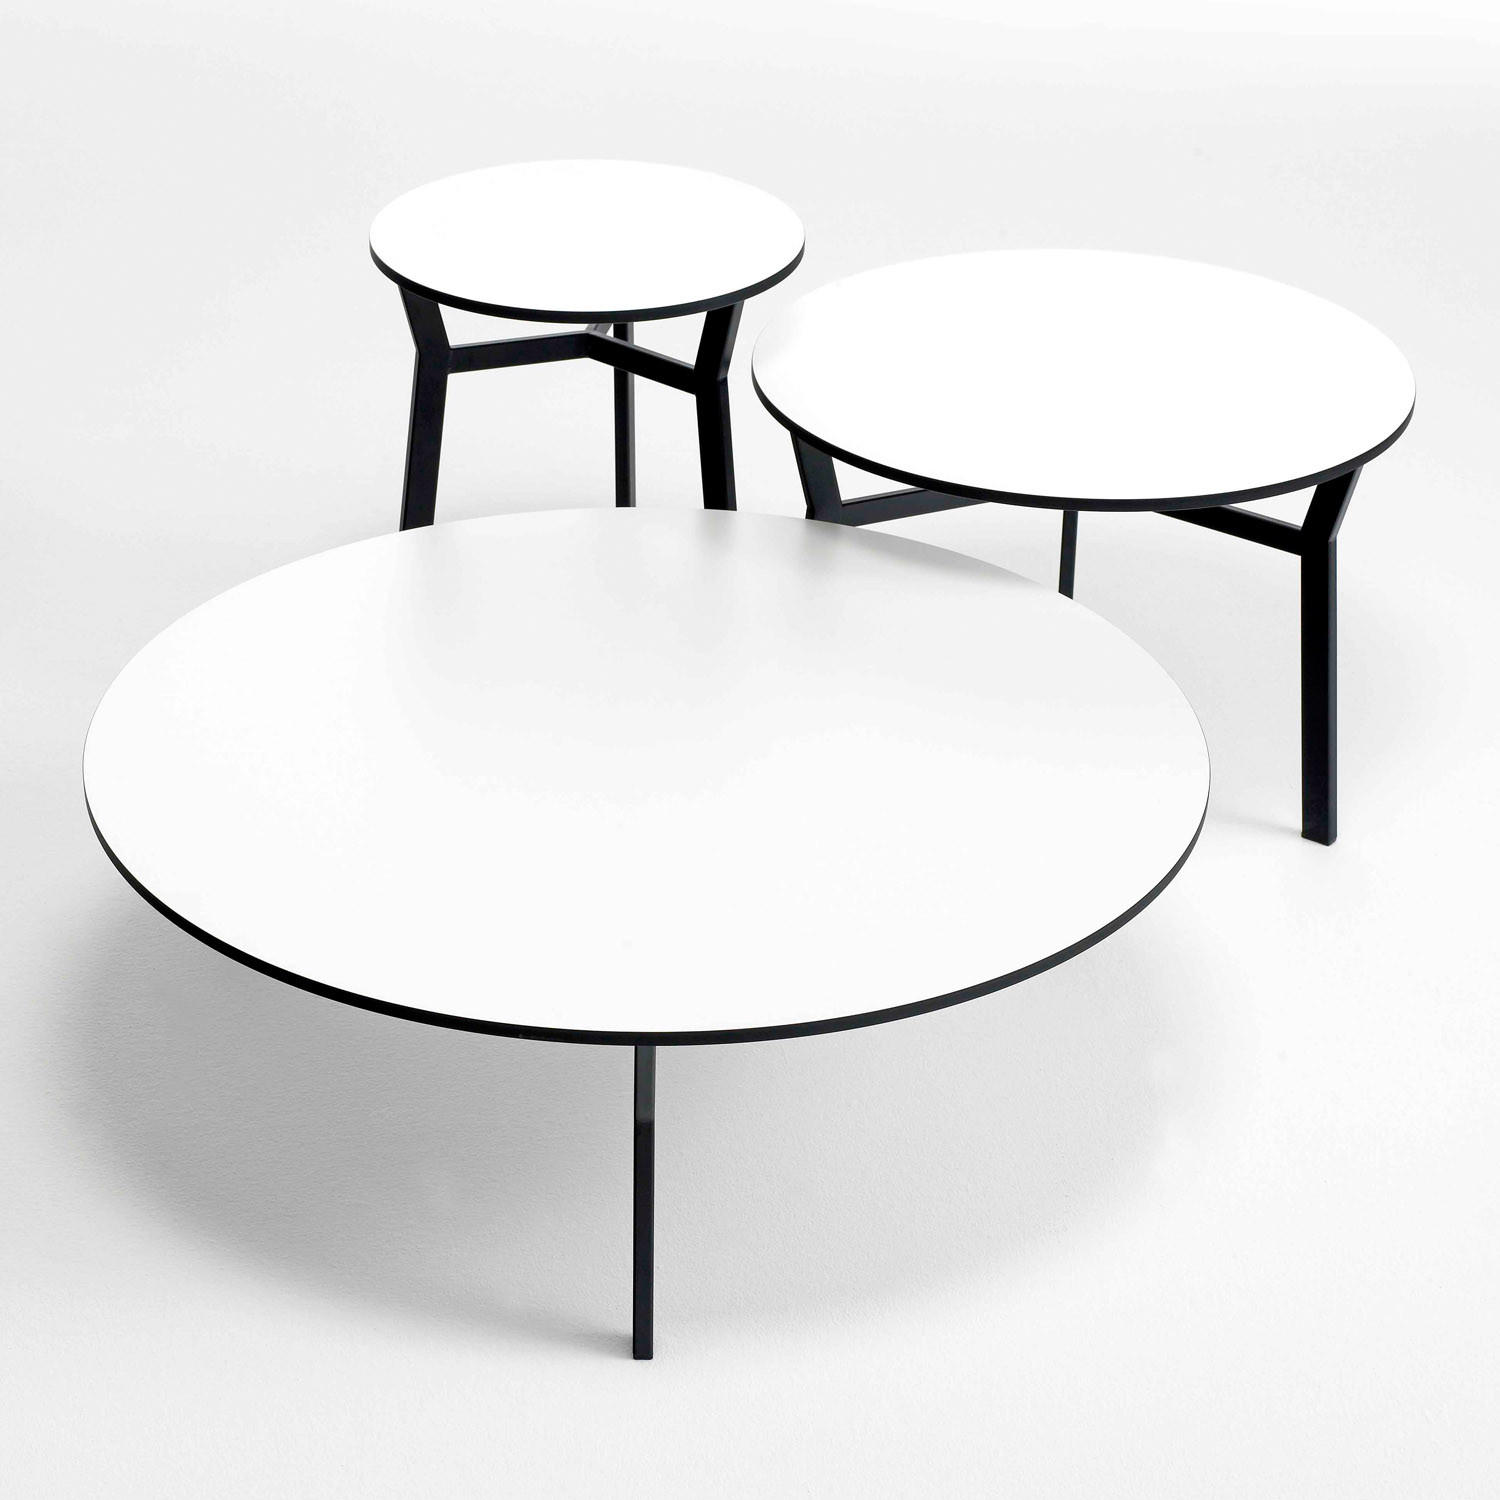 Sputnik Tables